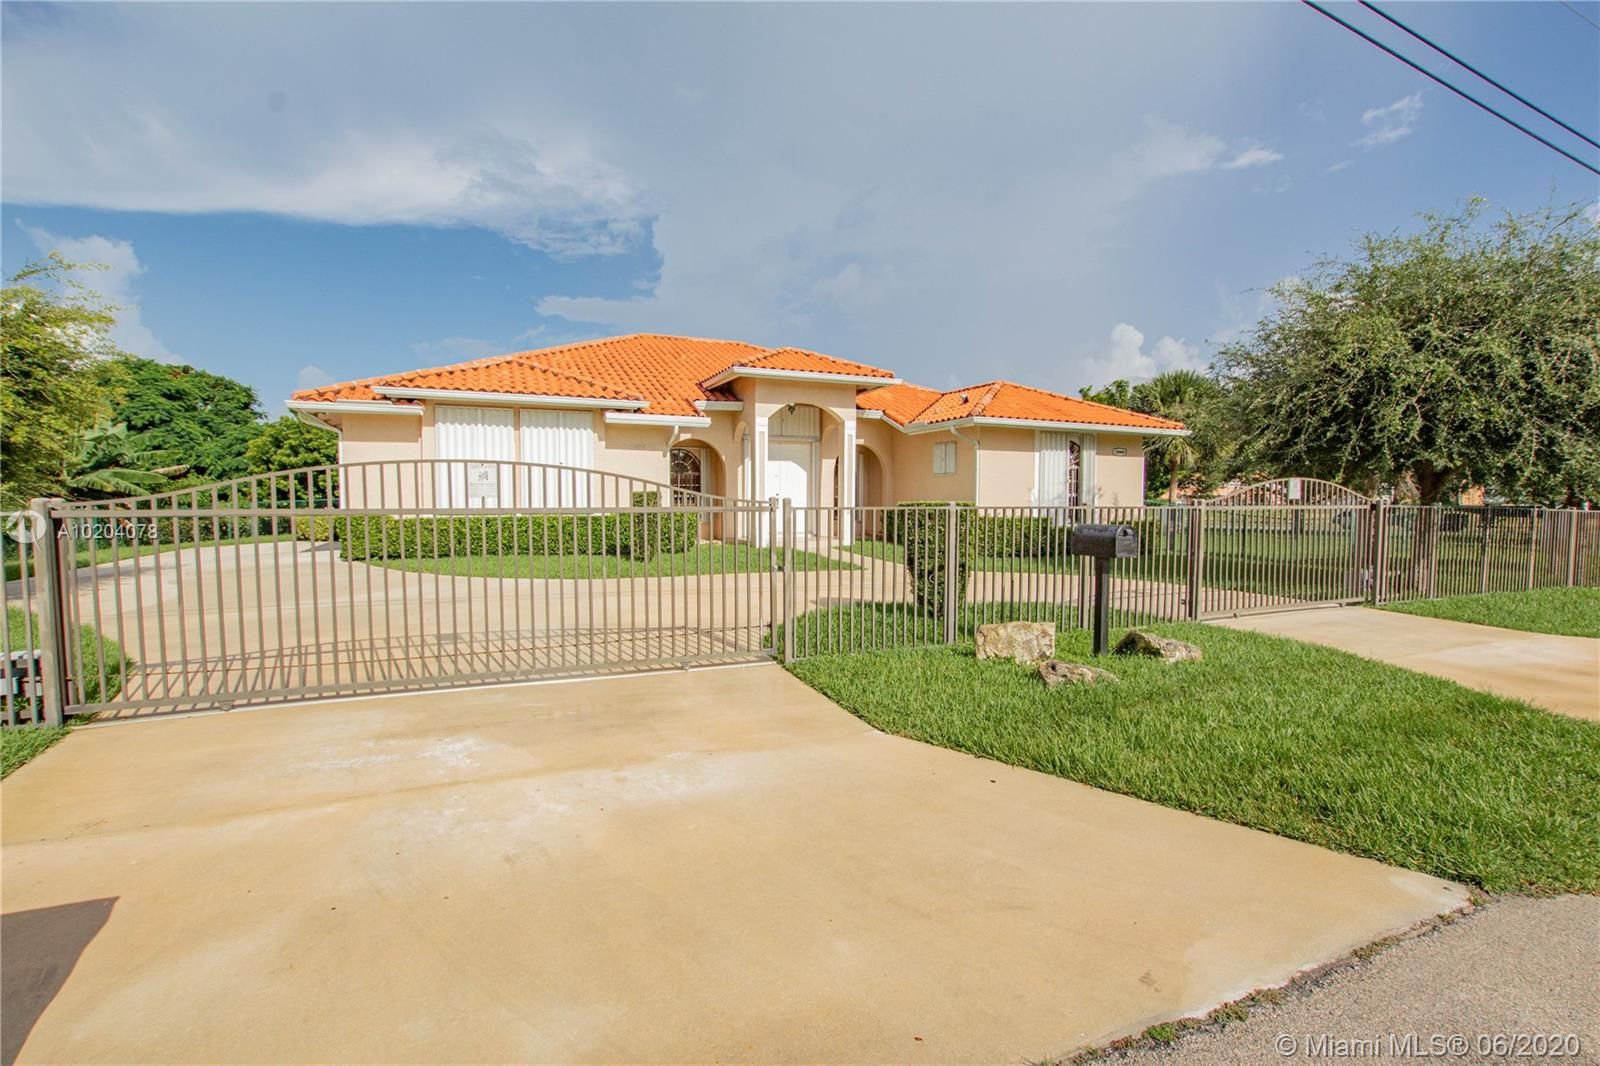 28800 SW 164th Avenue, Unincorporated Dade County, FL 33033